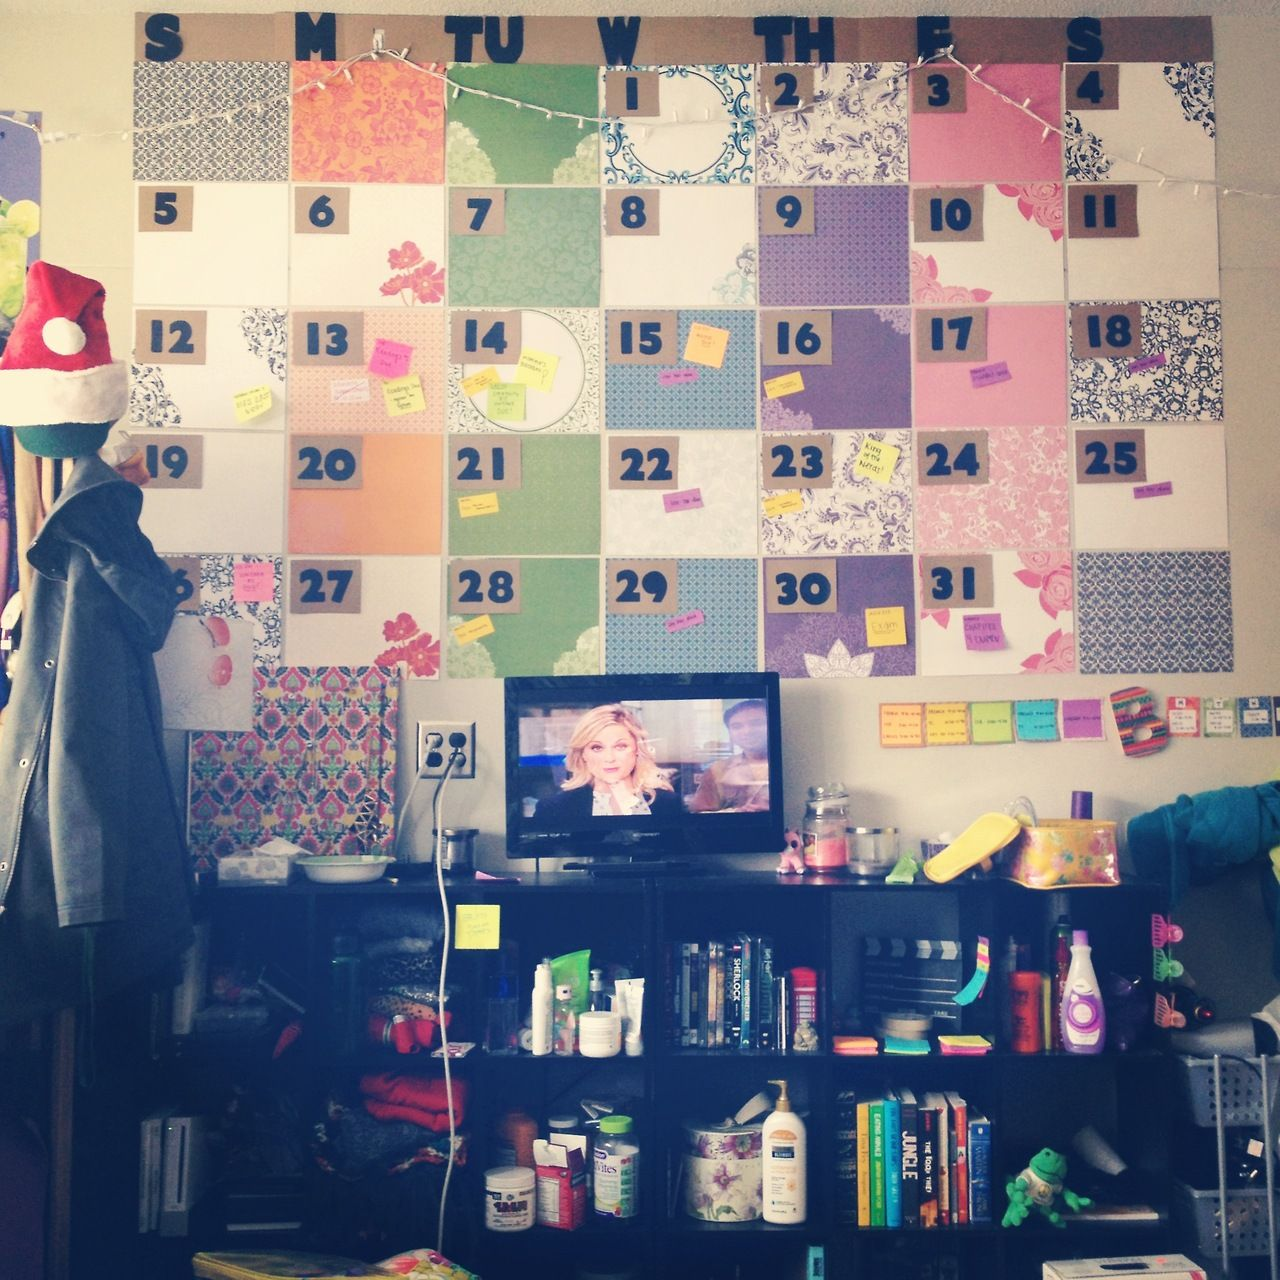 Dorm Room Wall Calendar A Super Easy And Creative Way To Make Your